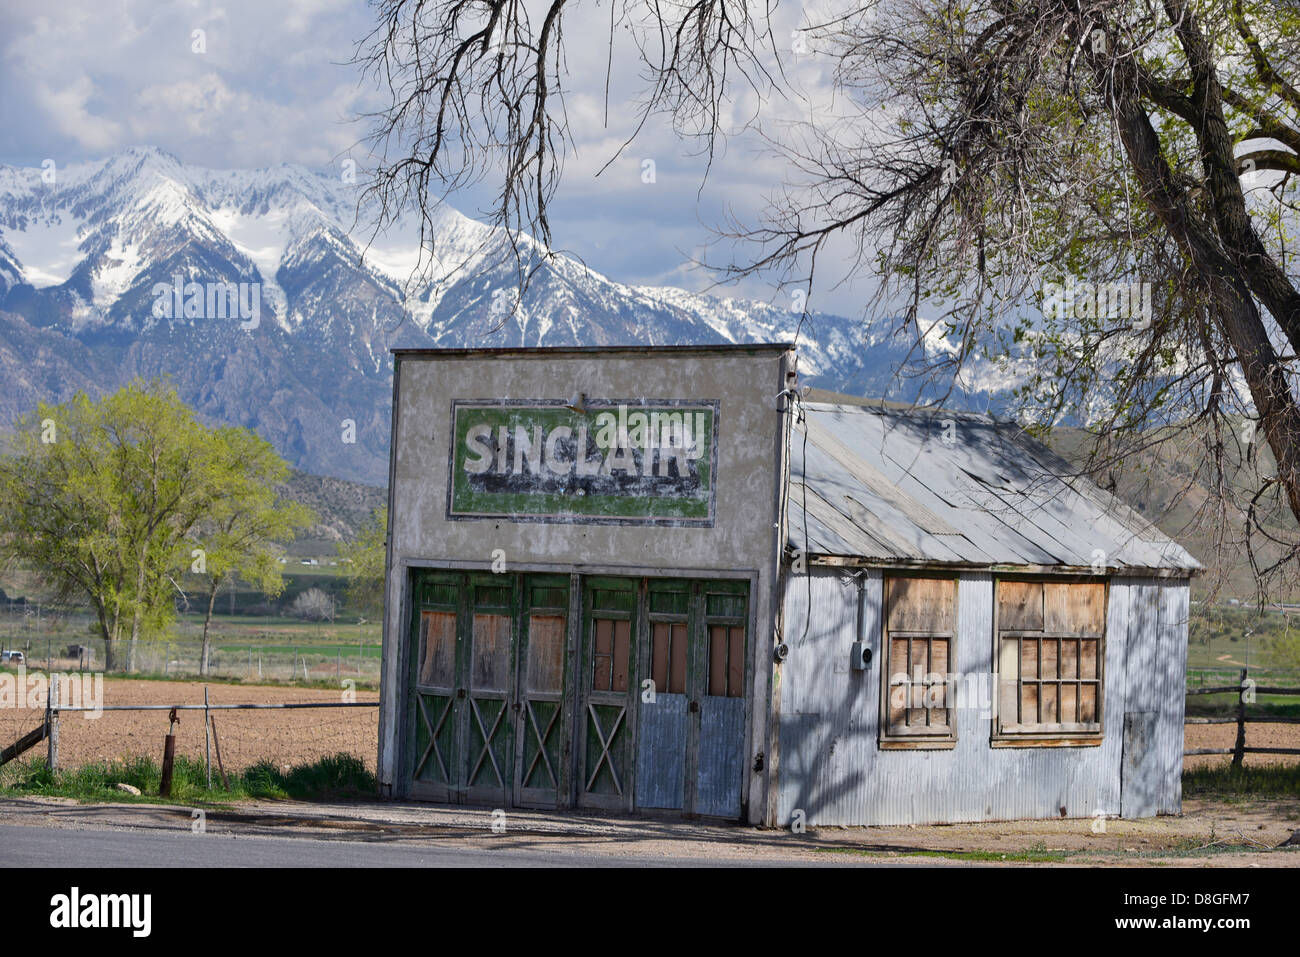 Sinclair Gas Station High Resolution Stock Photography And Images Alamy